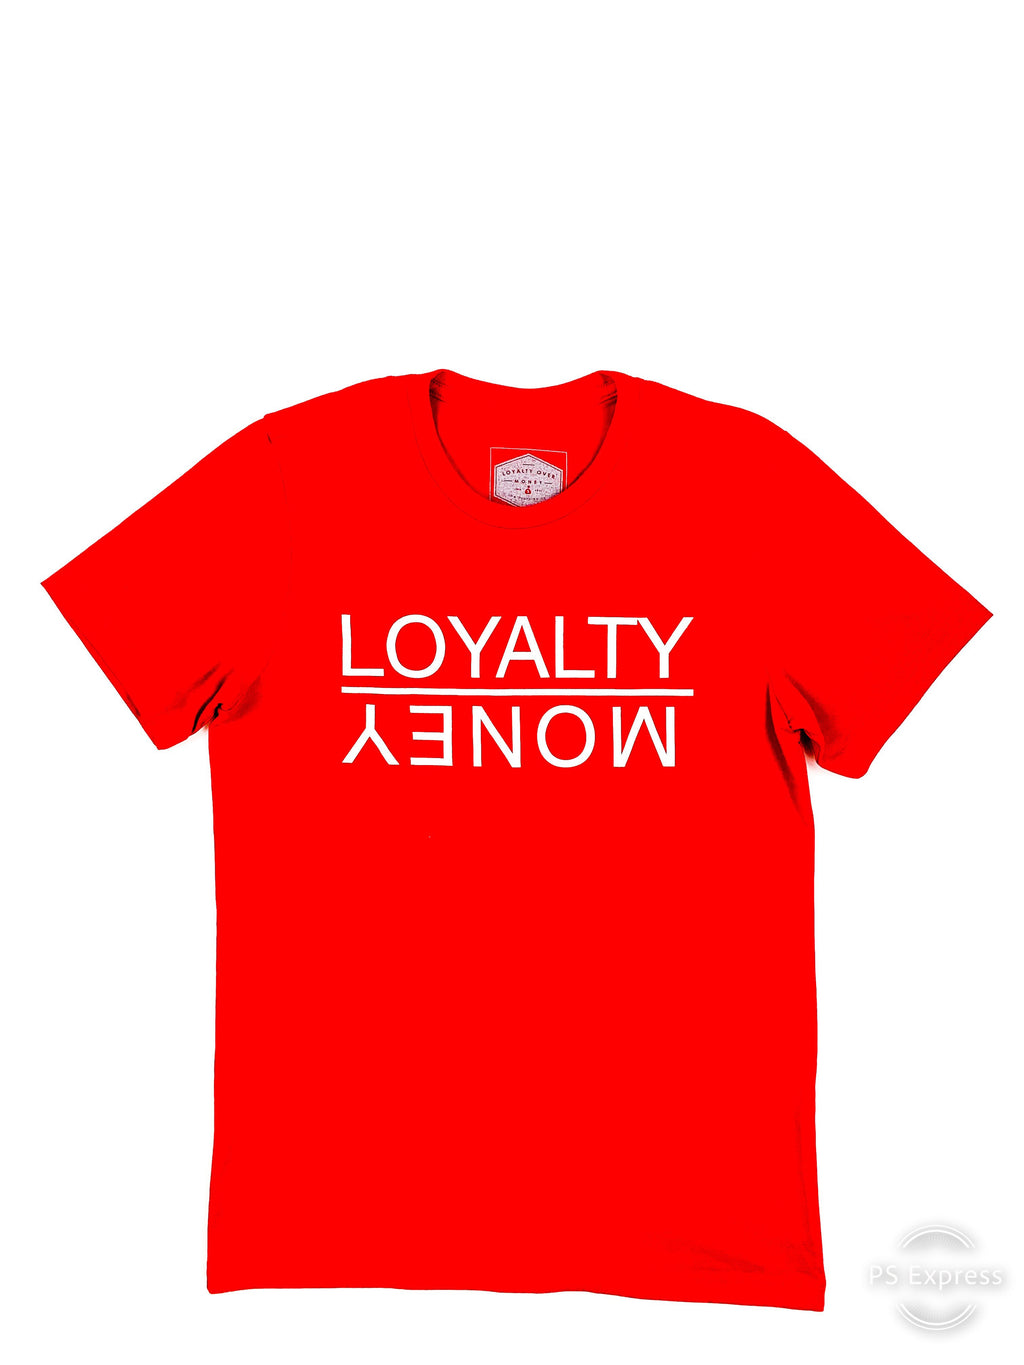 LOYALTY OVER MONEY SHIRTS